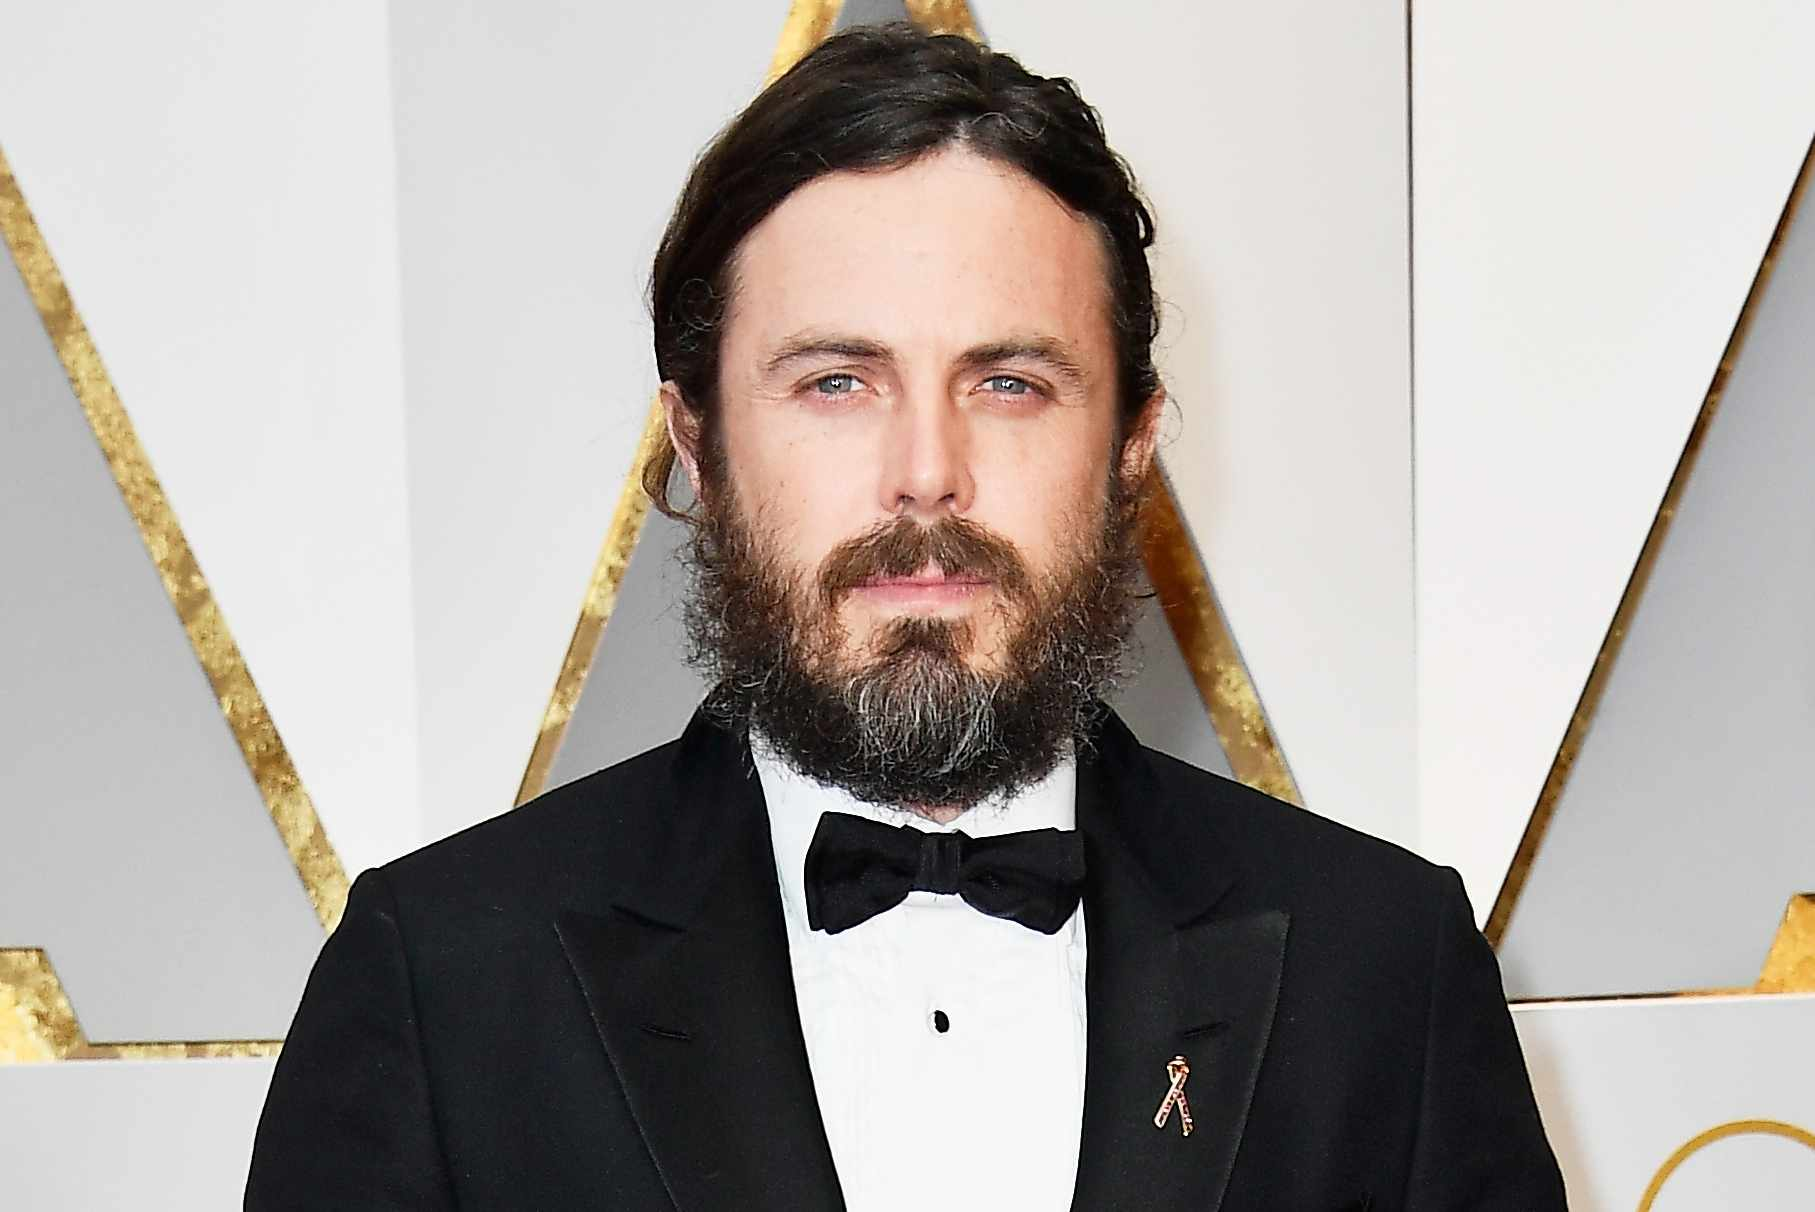 HOLLYWOOD, CA - FEBRUARY 26:  Actor Casey Affleck attends the 89th Annual Academy Awards at Hollywood & Highland Center on February 26, 2017 in Hollywood, California.  (Photo by Frazer Harrison/Getty Images)  TL